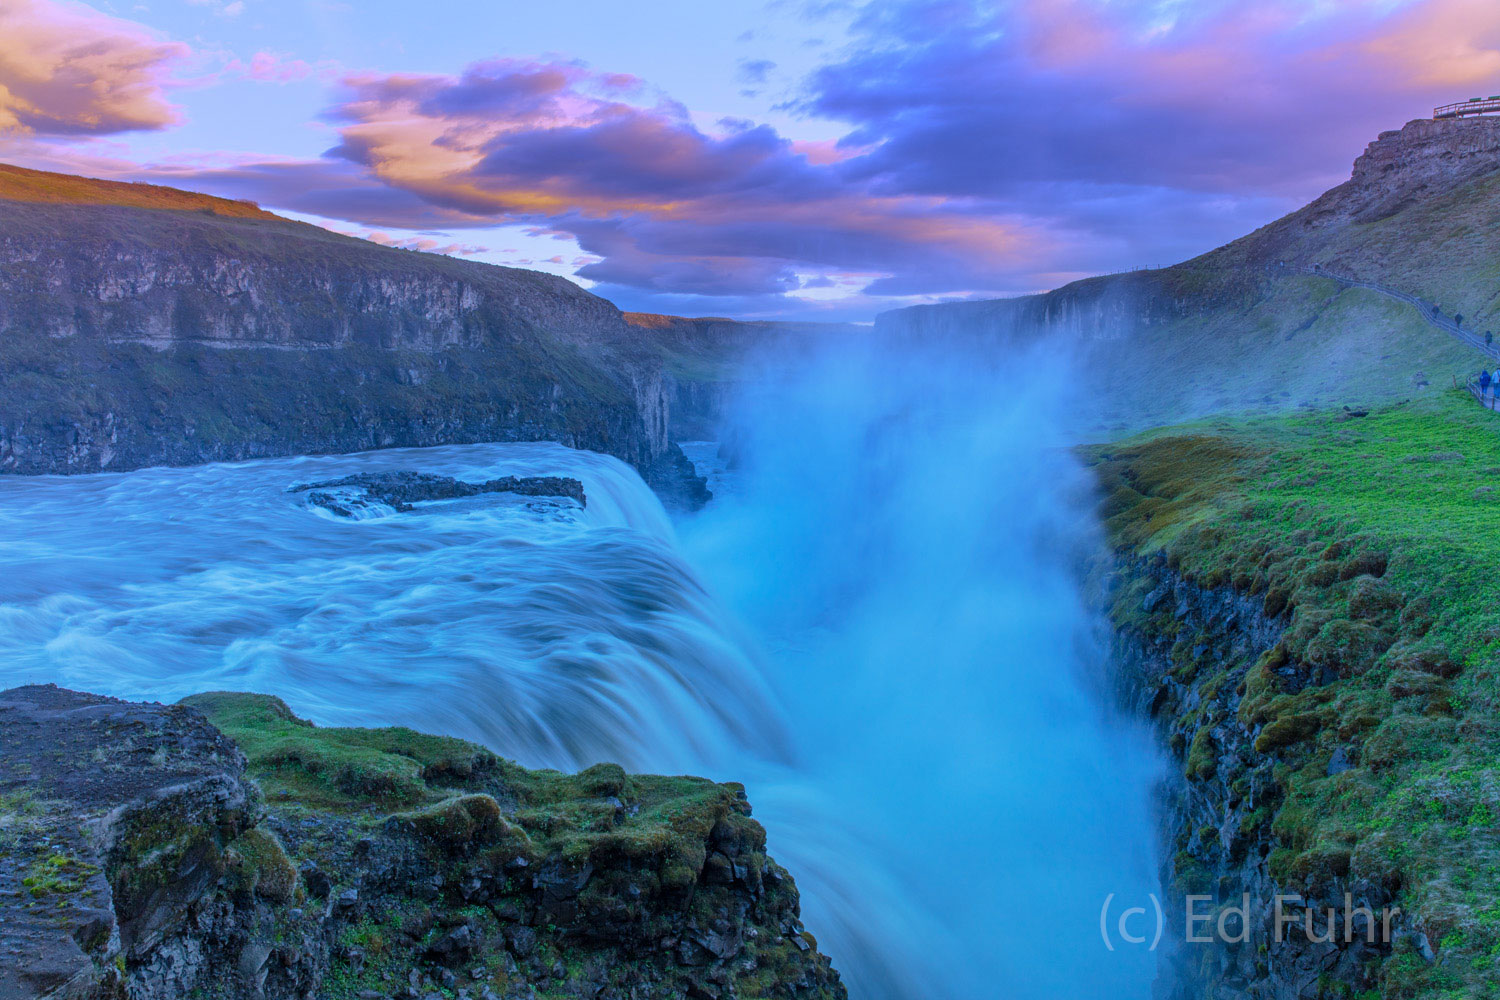 As the waters roar at Gullfoss, sunset colors the skies above.